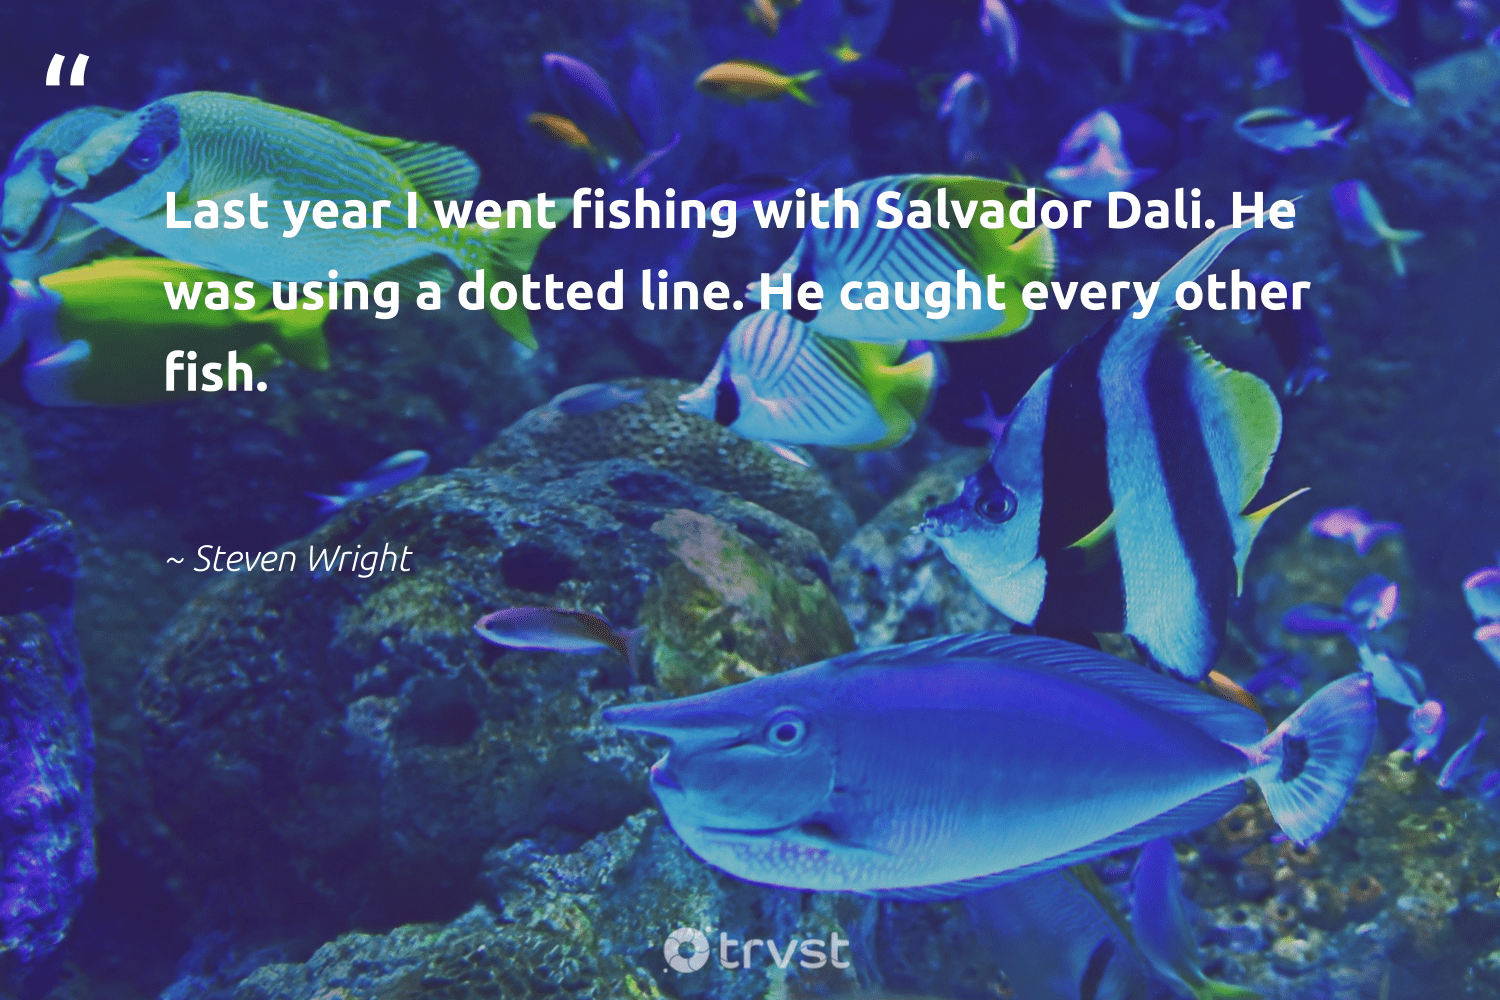 """""""Last year I went fishing with Salvador Dali. He was using a dotted line. He caught every other fish.""""  - Steven Wright #trvst #quotes #fishing #fish #sustainability #socialchange #savetheoceans #beinspired #oceans #dogood #wildlifeprotection #impact"""